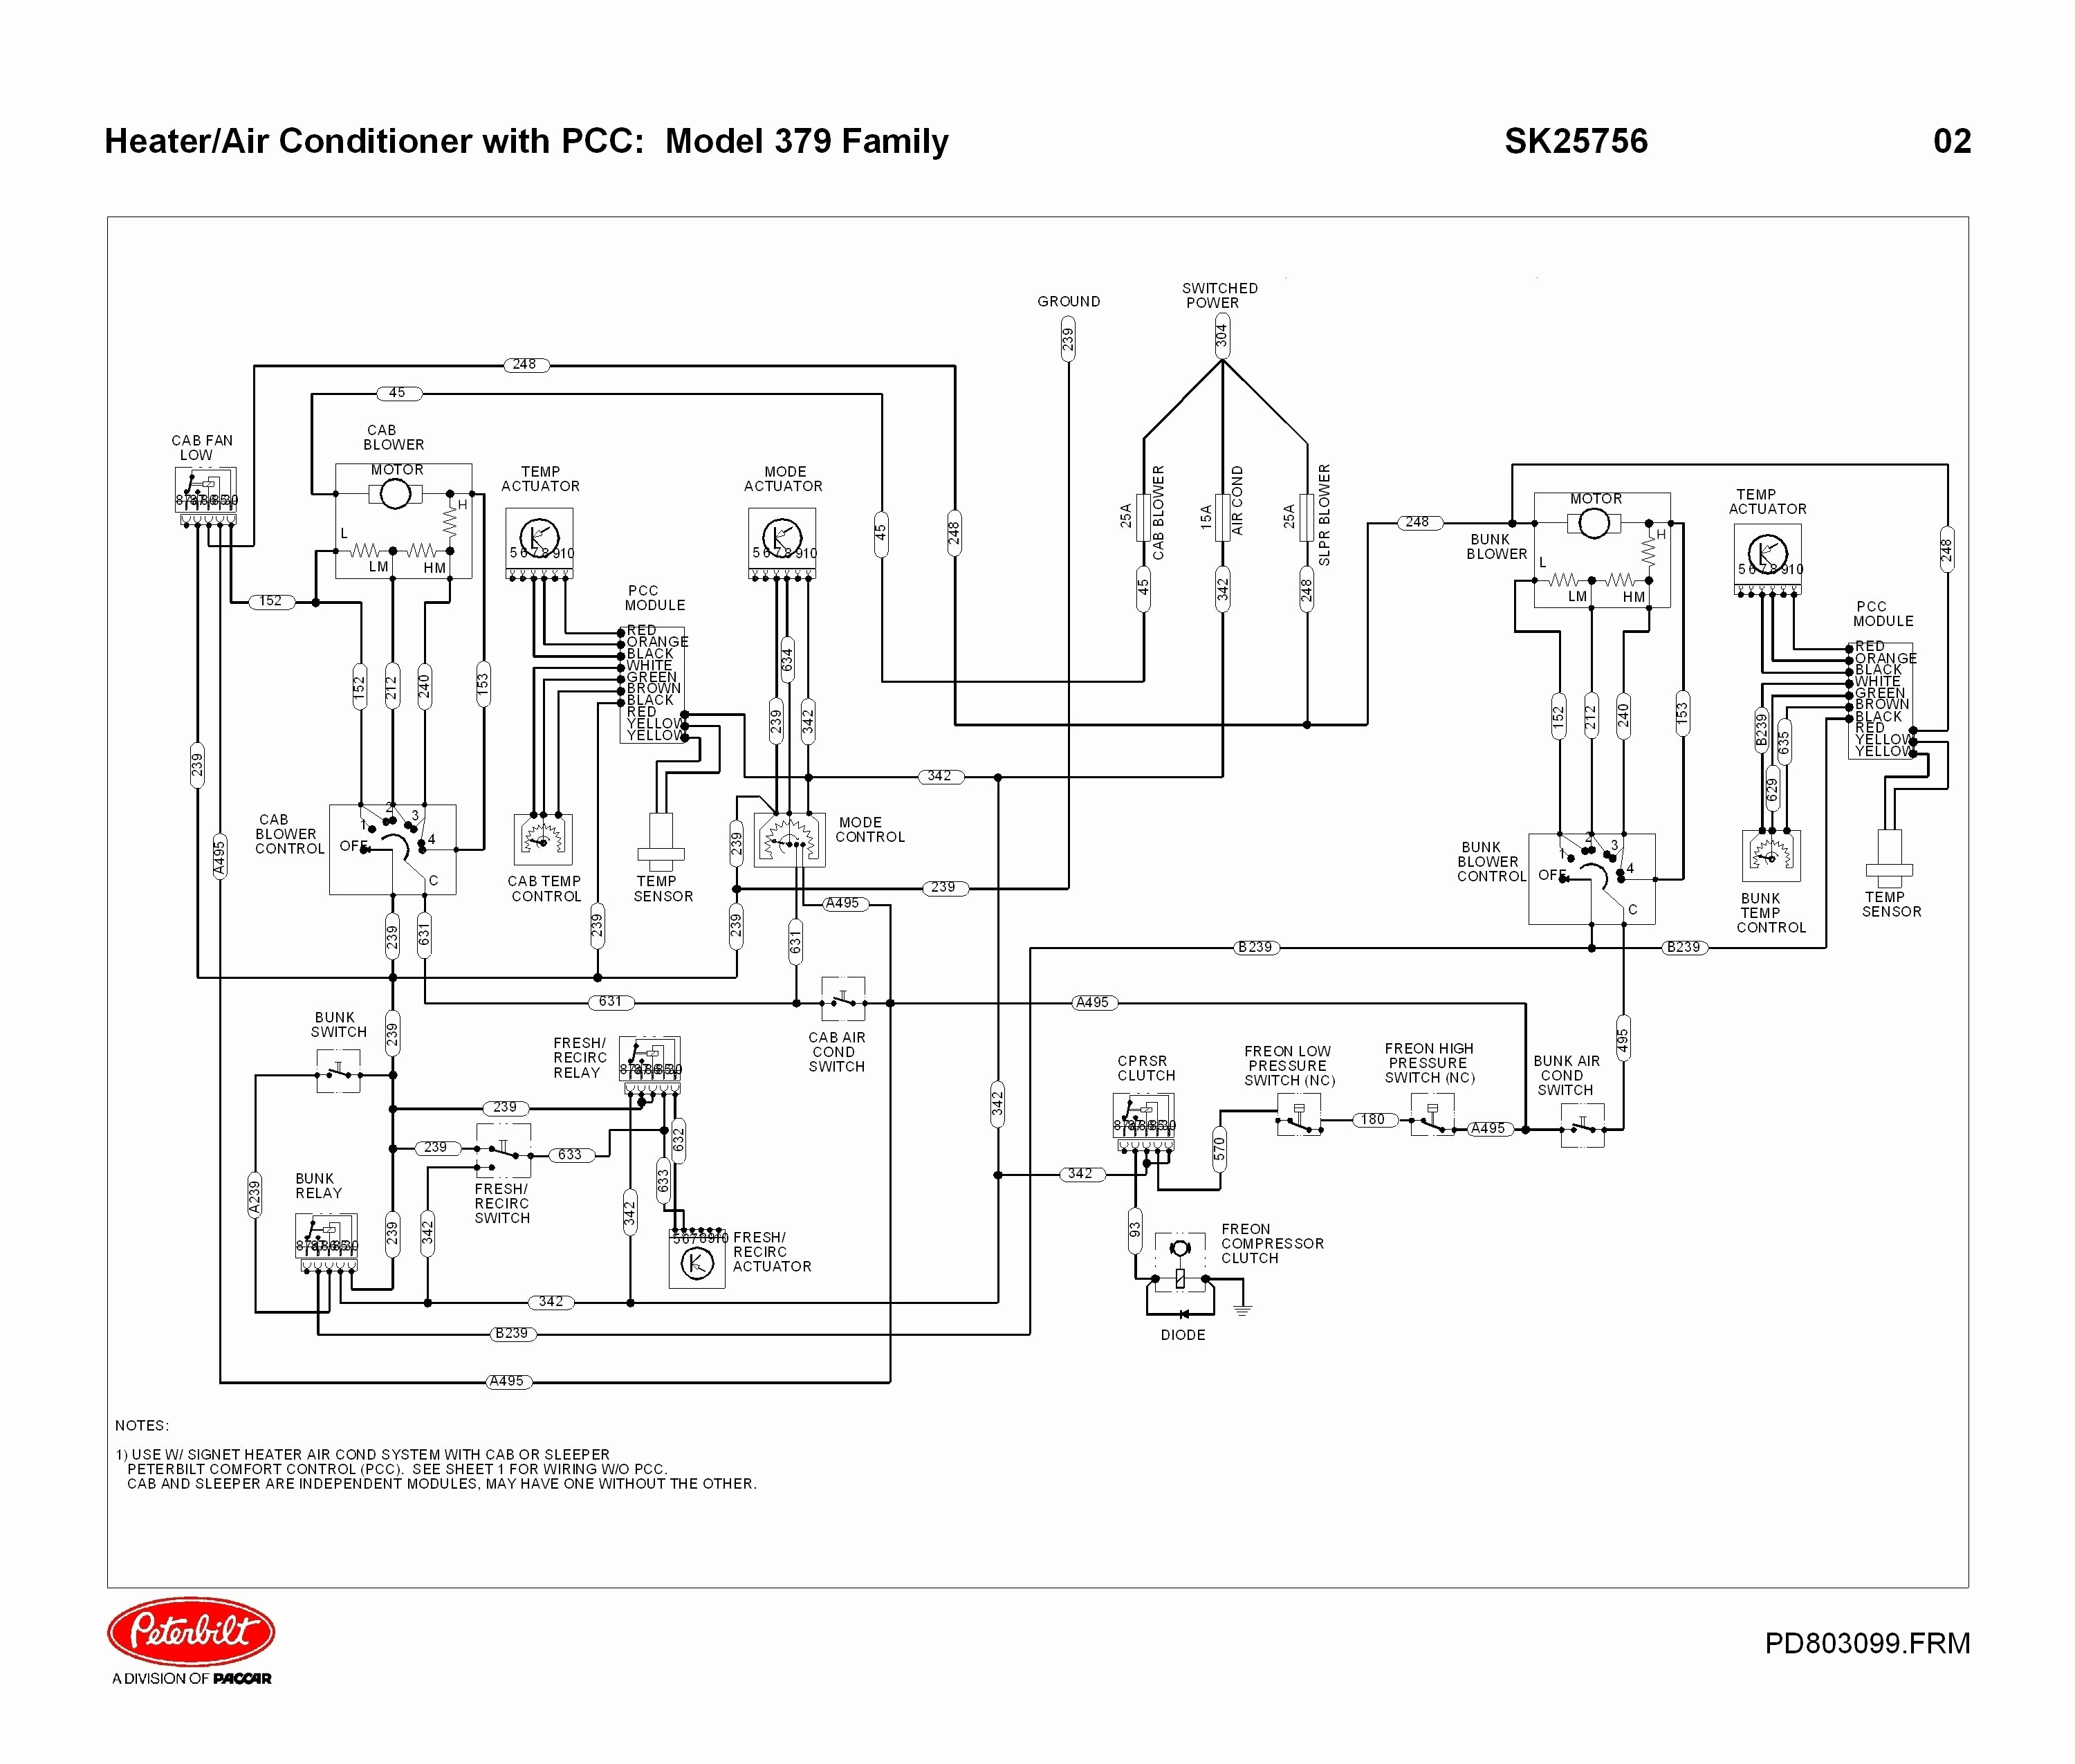 images?q=tbn:ANd9GcQh_l3eQ5xwiPy07kGEXjmjgmBKBRB7H2mRxCGhv1tFWg5c_mWT 2007 Peterbilt 379 Fuse Panel Diagram